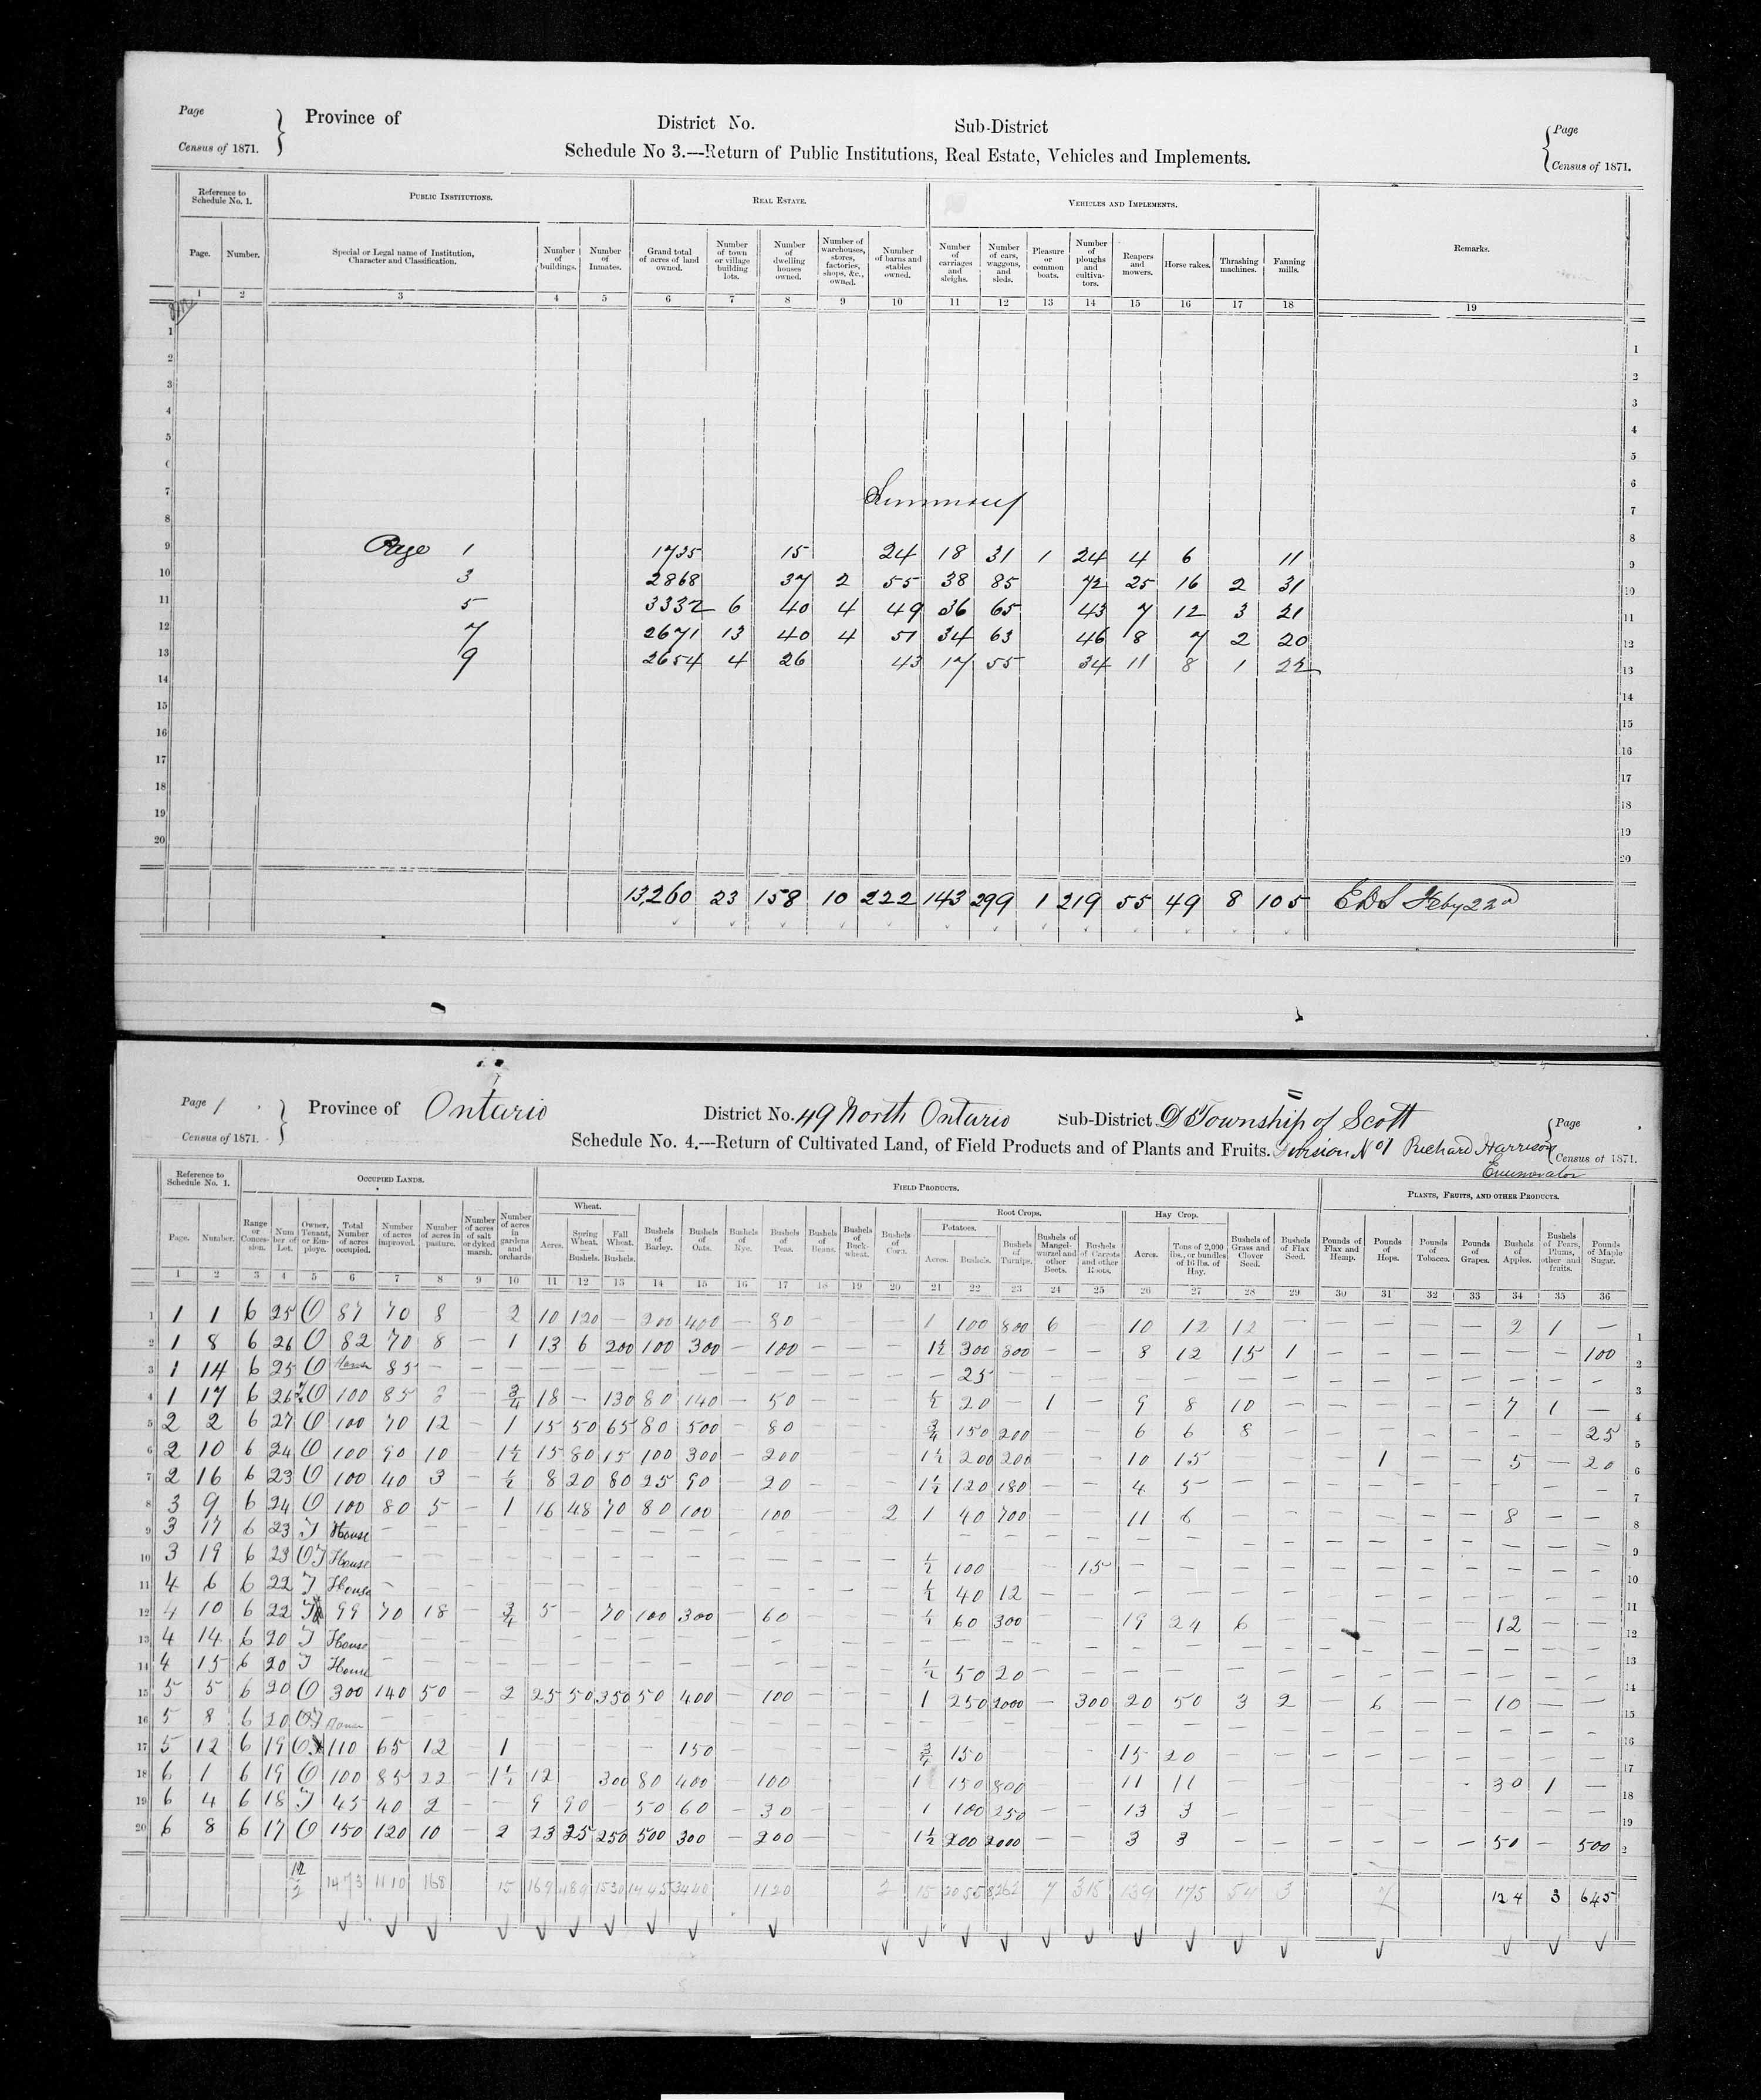 Title: Census of Canada, 1871 - Mikan Number: 142105 - Microform: c-9976